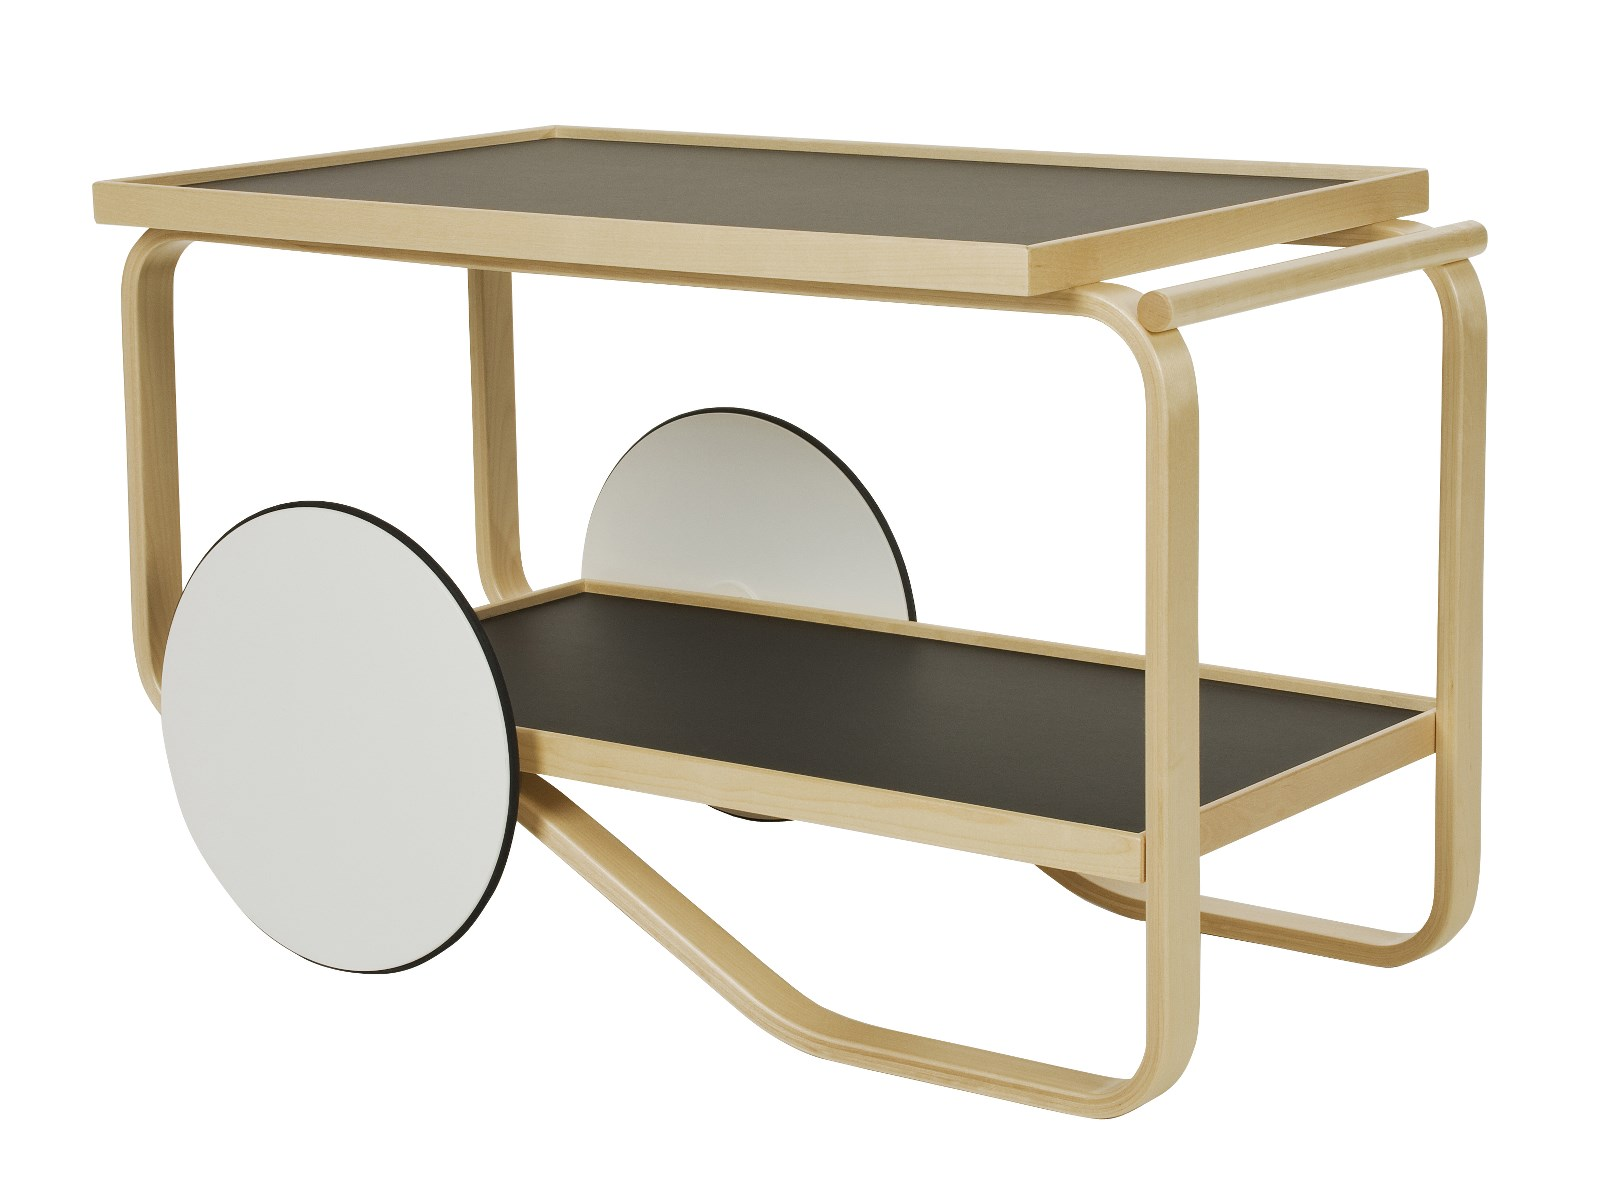 901 Tea trolley by Alvar Aalto